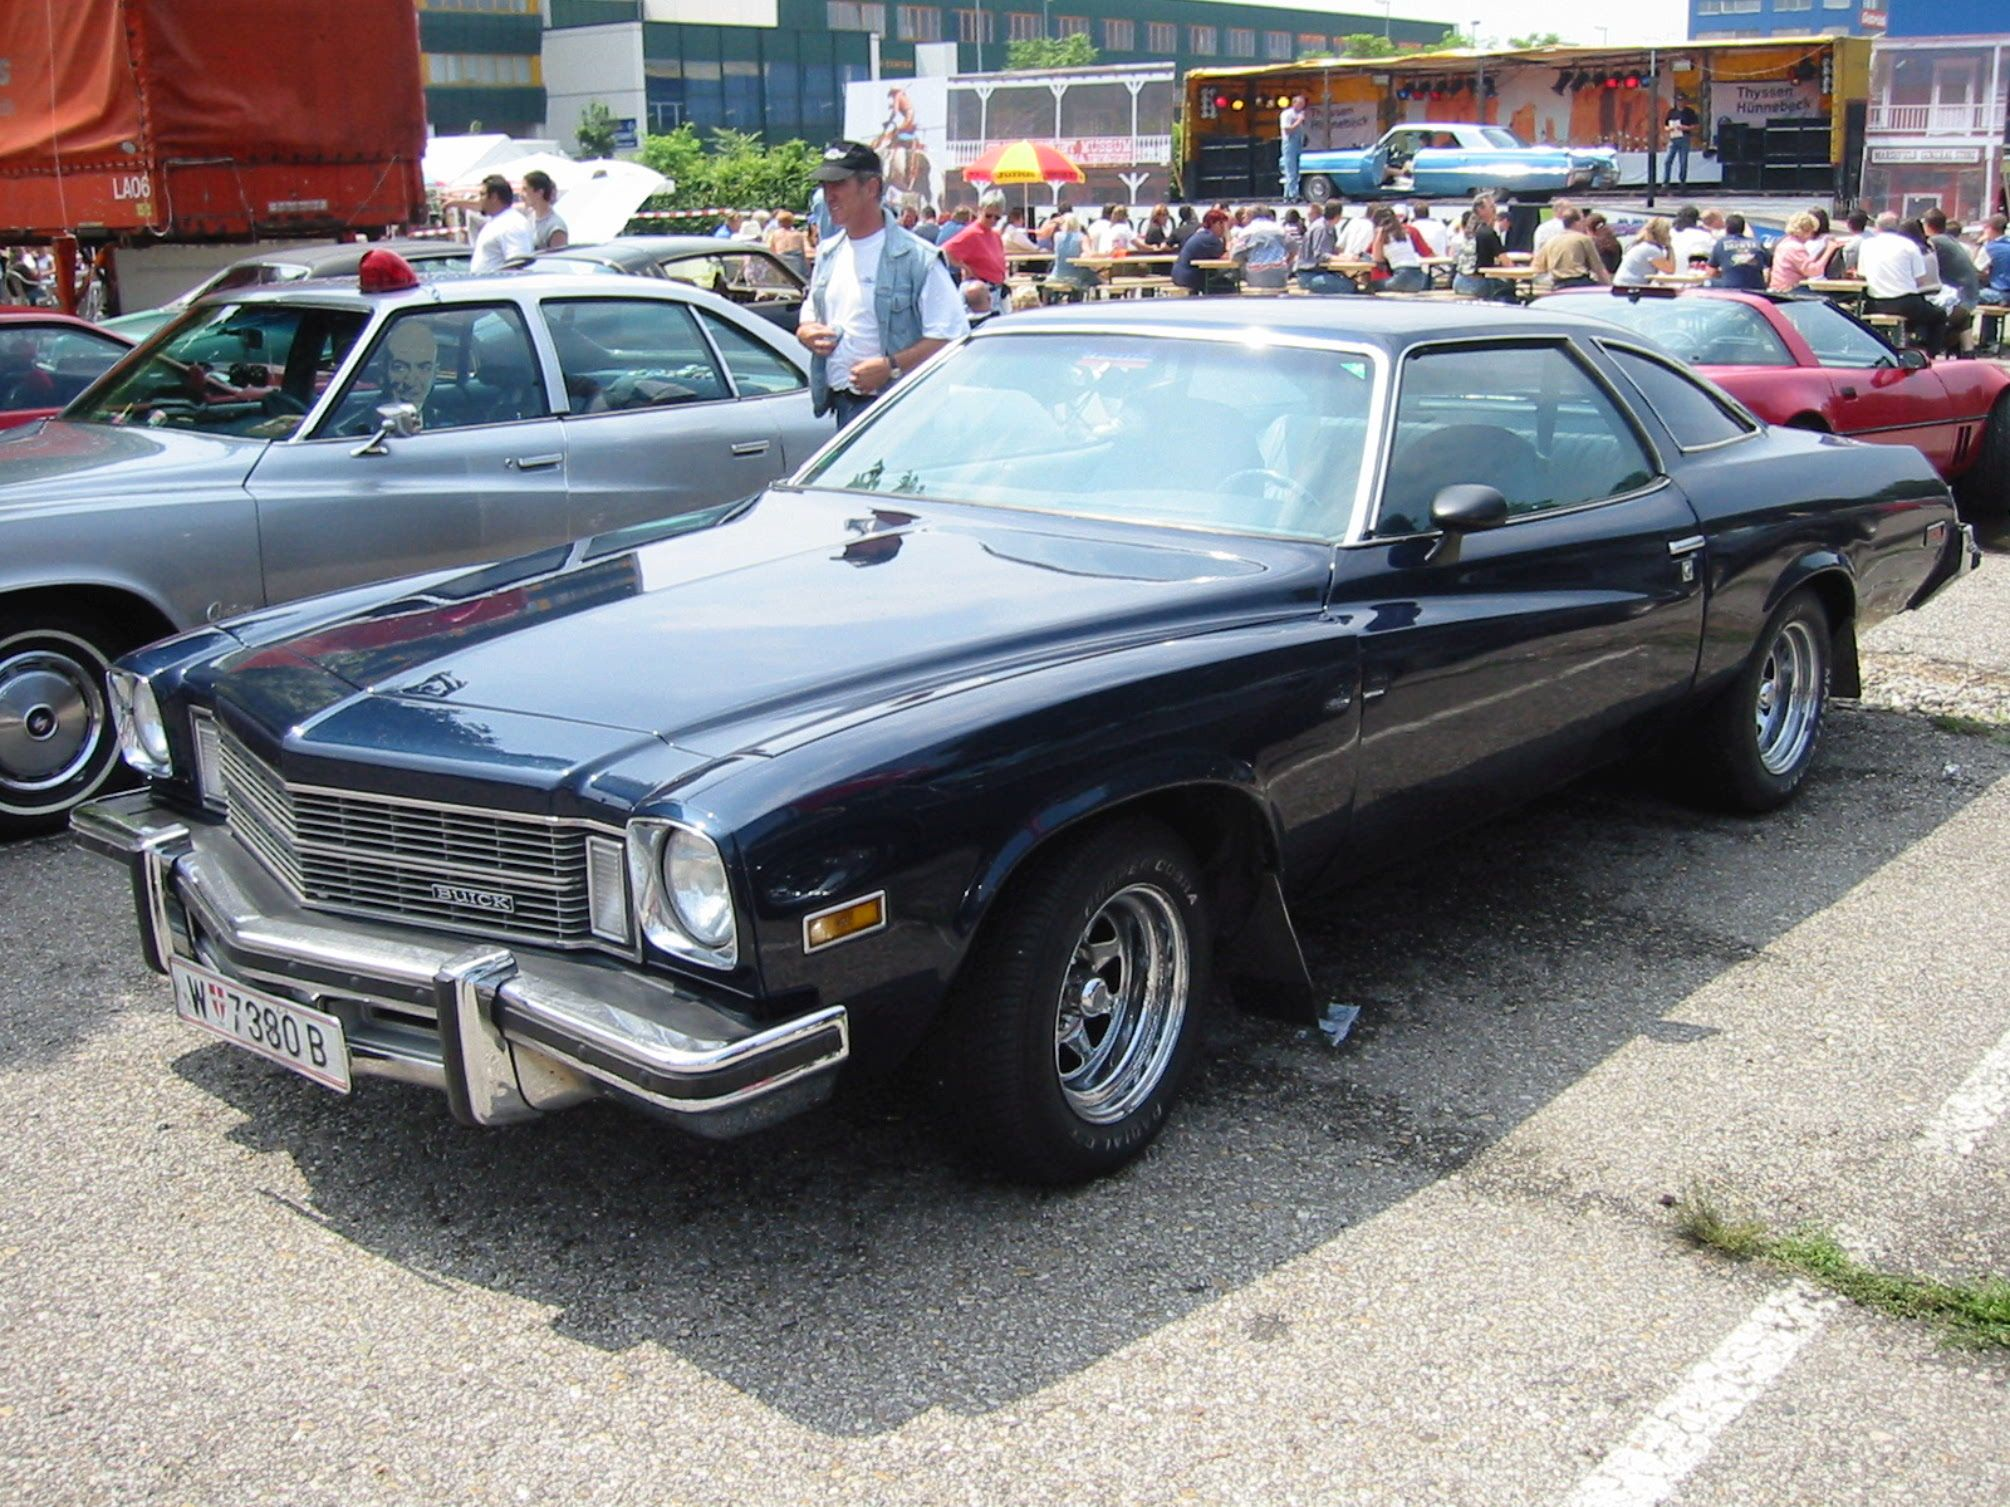 75 buick regal, i used to have one just like this. black with red